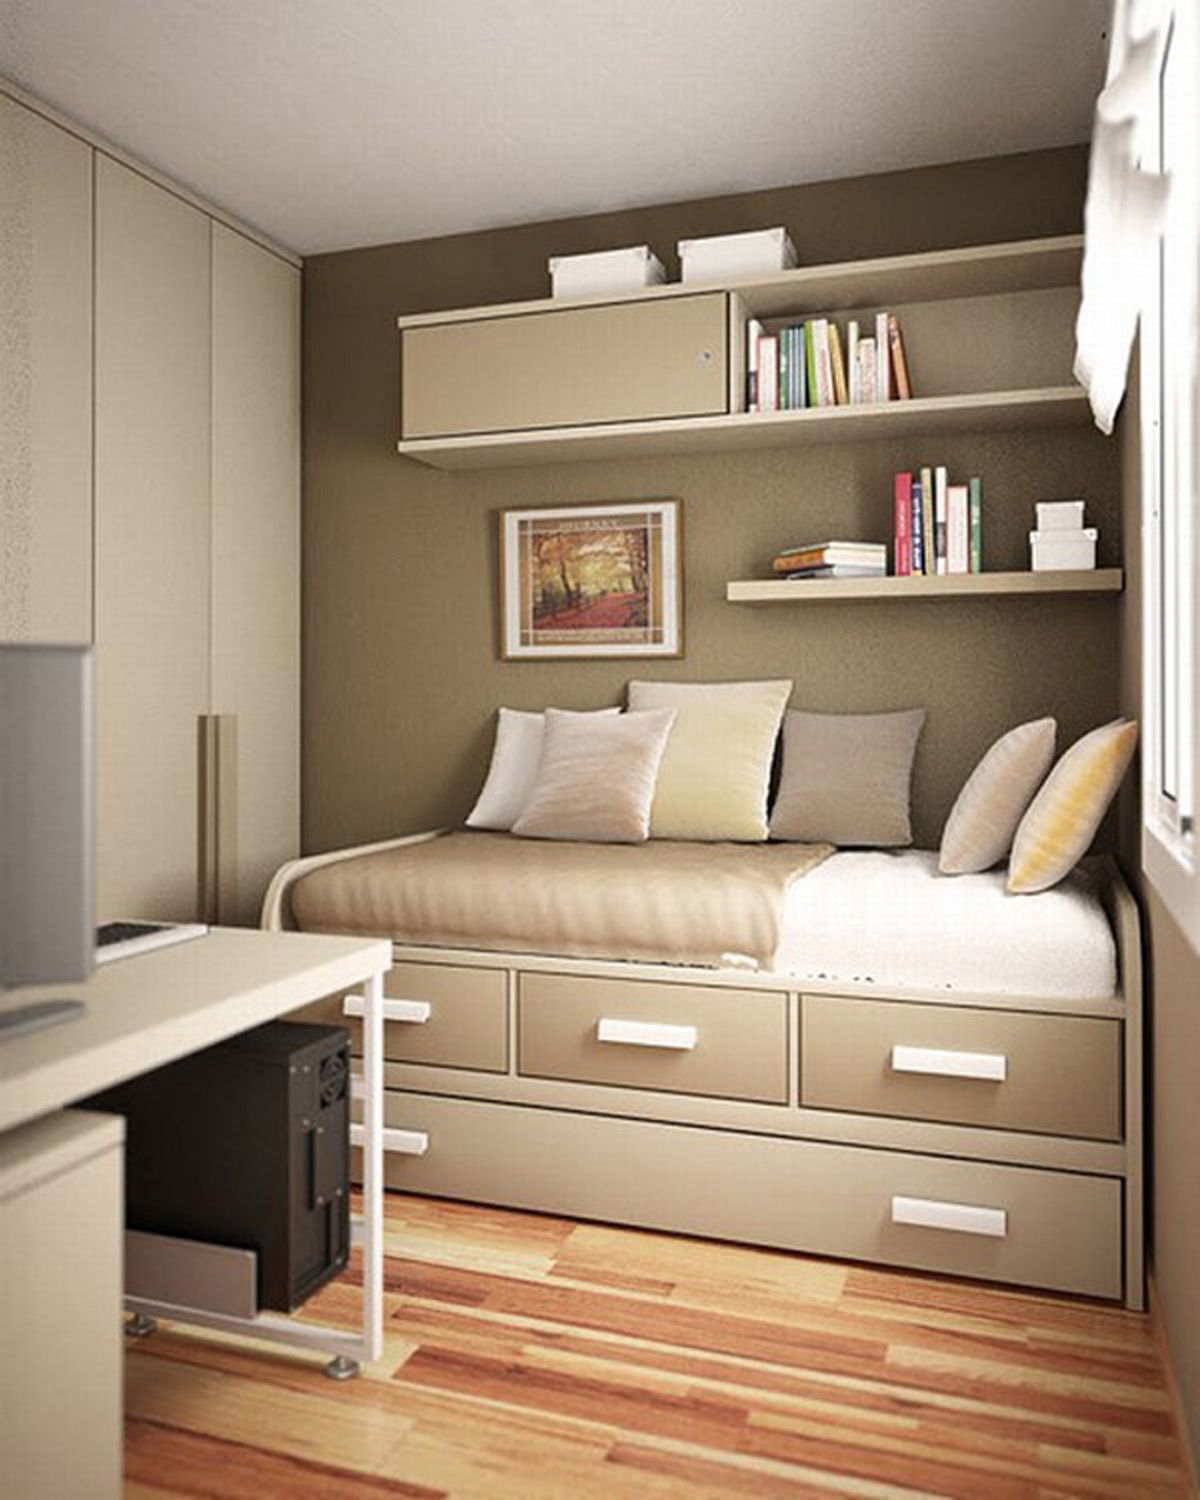 Small Bedrooms Designs contemporary small bedroom ideas | bedrooms, storage design and